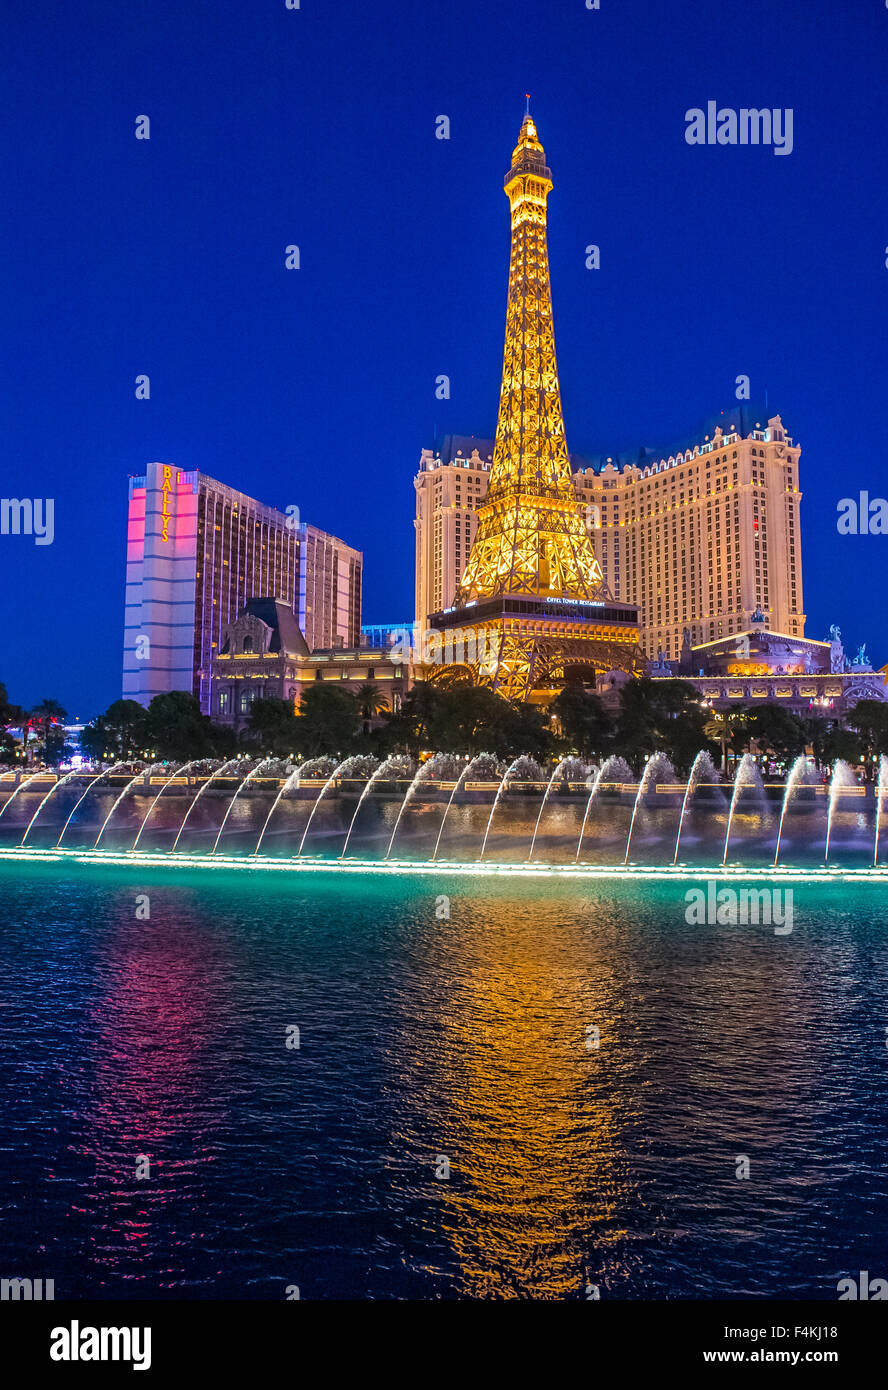 Night view of the dancing fountains of Bellagio and the Eiffel Tower replica of Paris hotel in Las Vegas - Stock Image